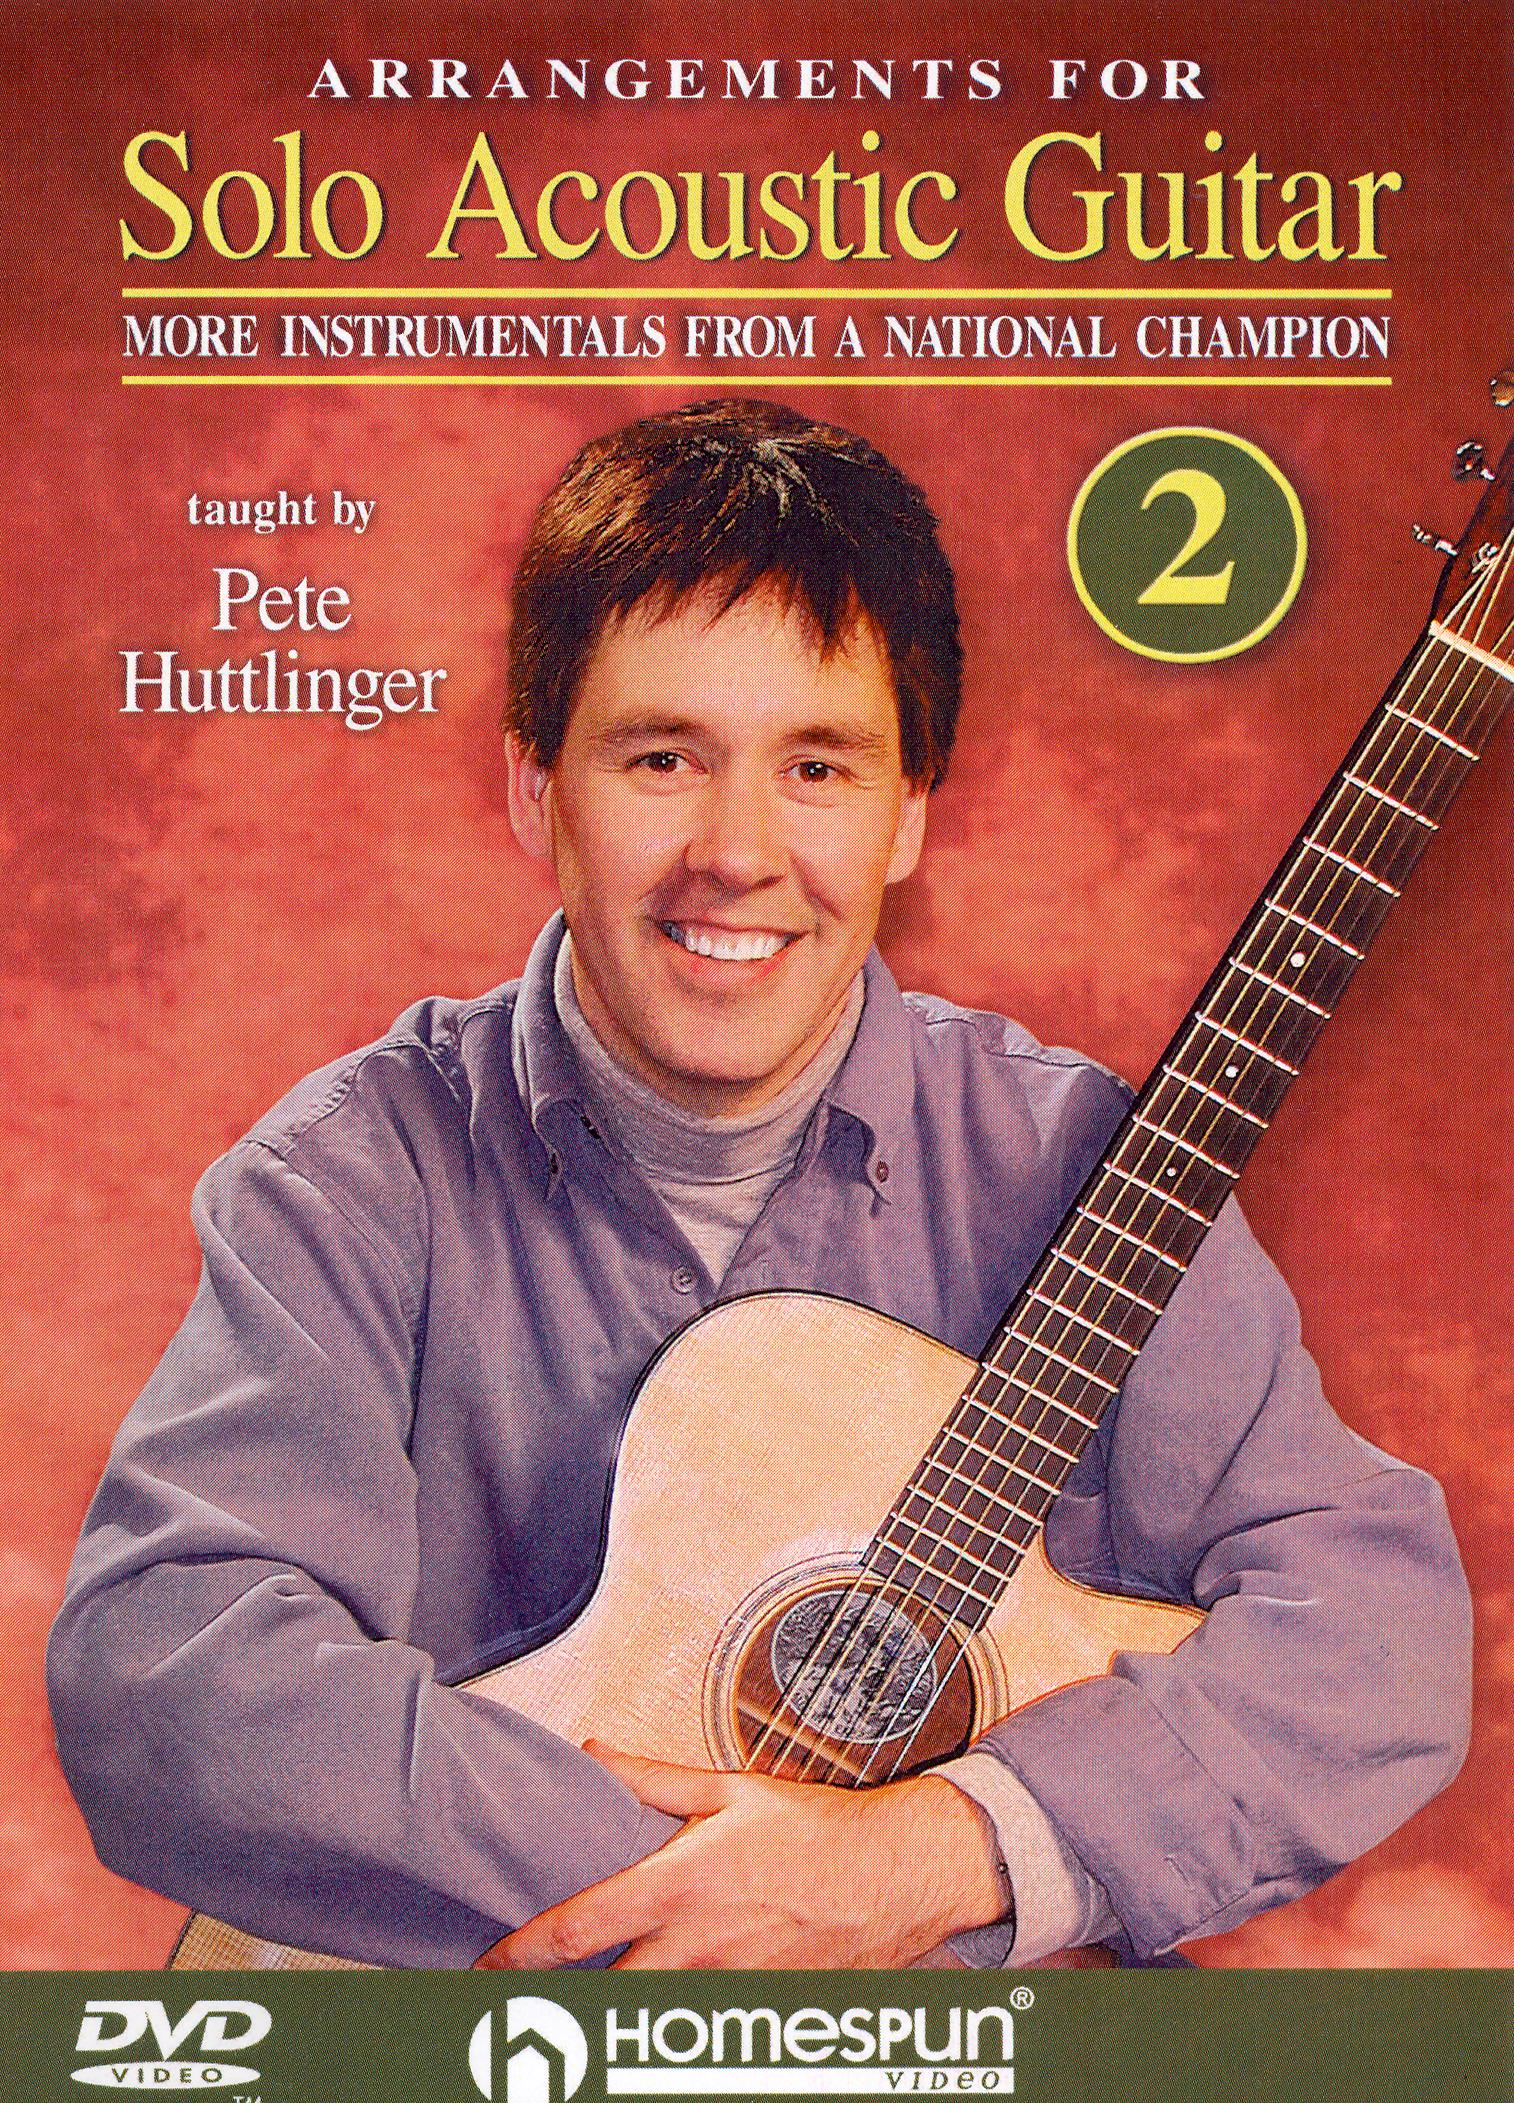 Peter Huttlinger: Arrangements for Solo Acoustic Guitar, Lesson 2